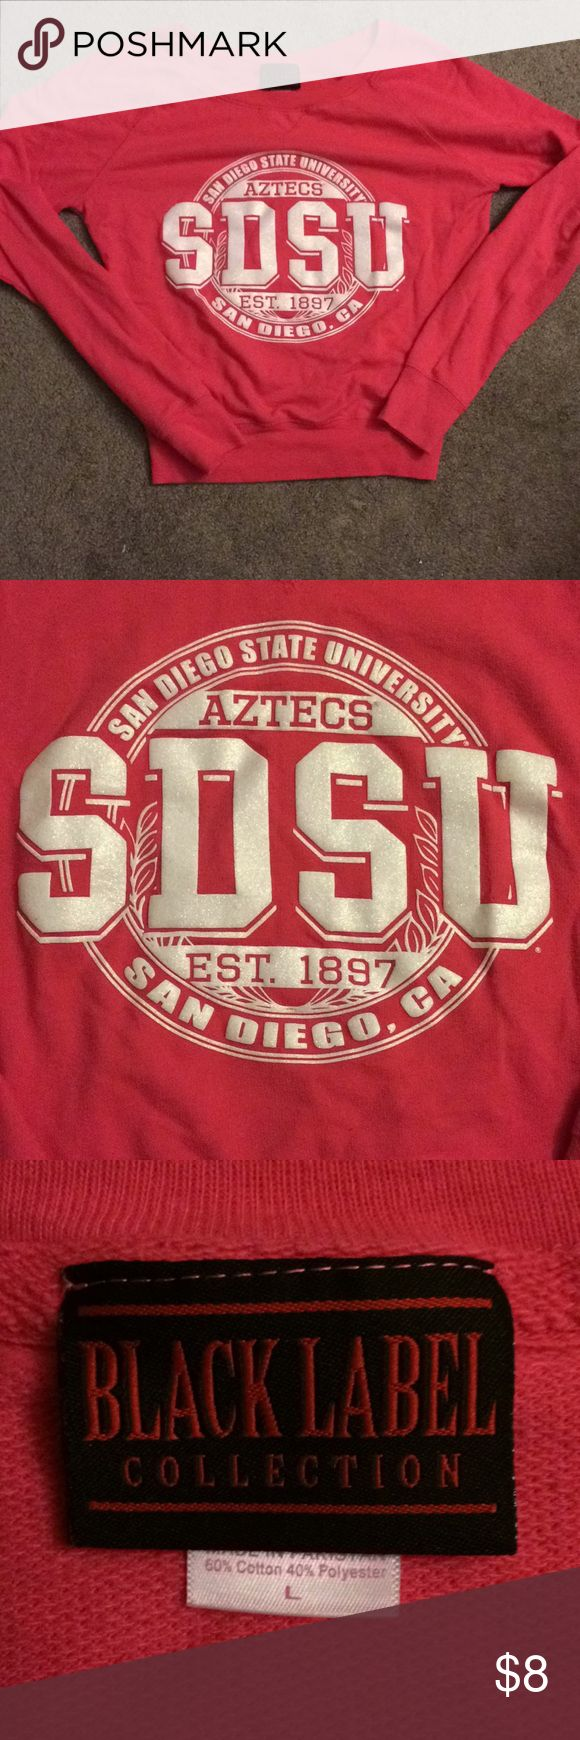 SDSU San Diego State Pink Crewneck Sweatshirt S/M San Diego State University SDSU Pink crewneck sweatshirt  Purchased from SDSU bookstore This sweatshirt runs small & I would definitely not classify it as a large. Fits a small or medium.  Originally $45 Excellent condition, no stains or rips Sweaters Crew & Scoop Necks